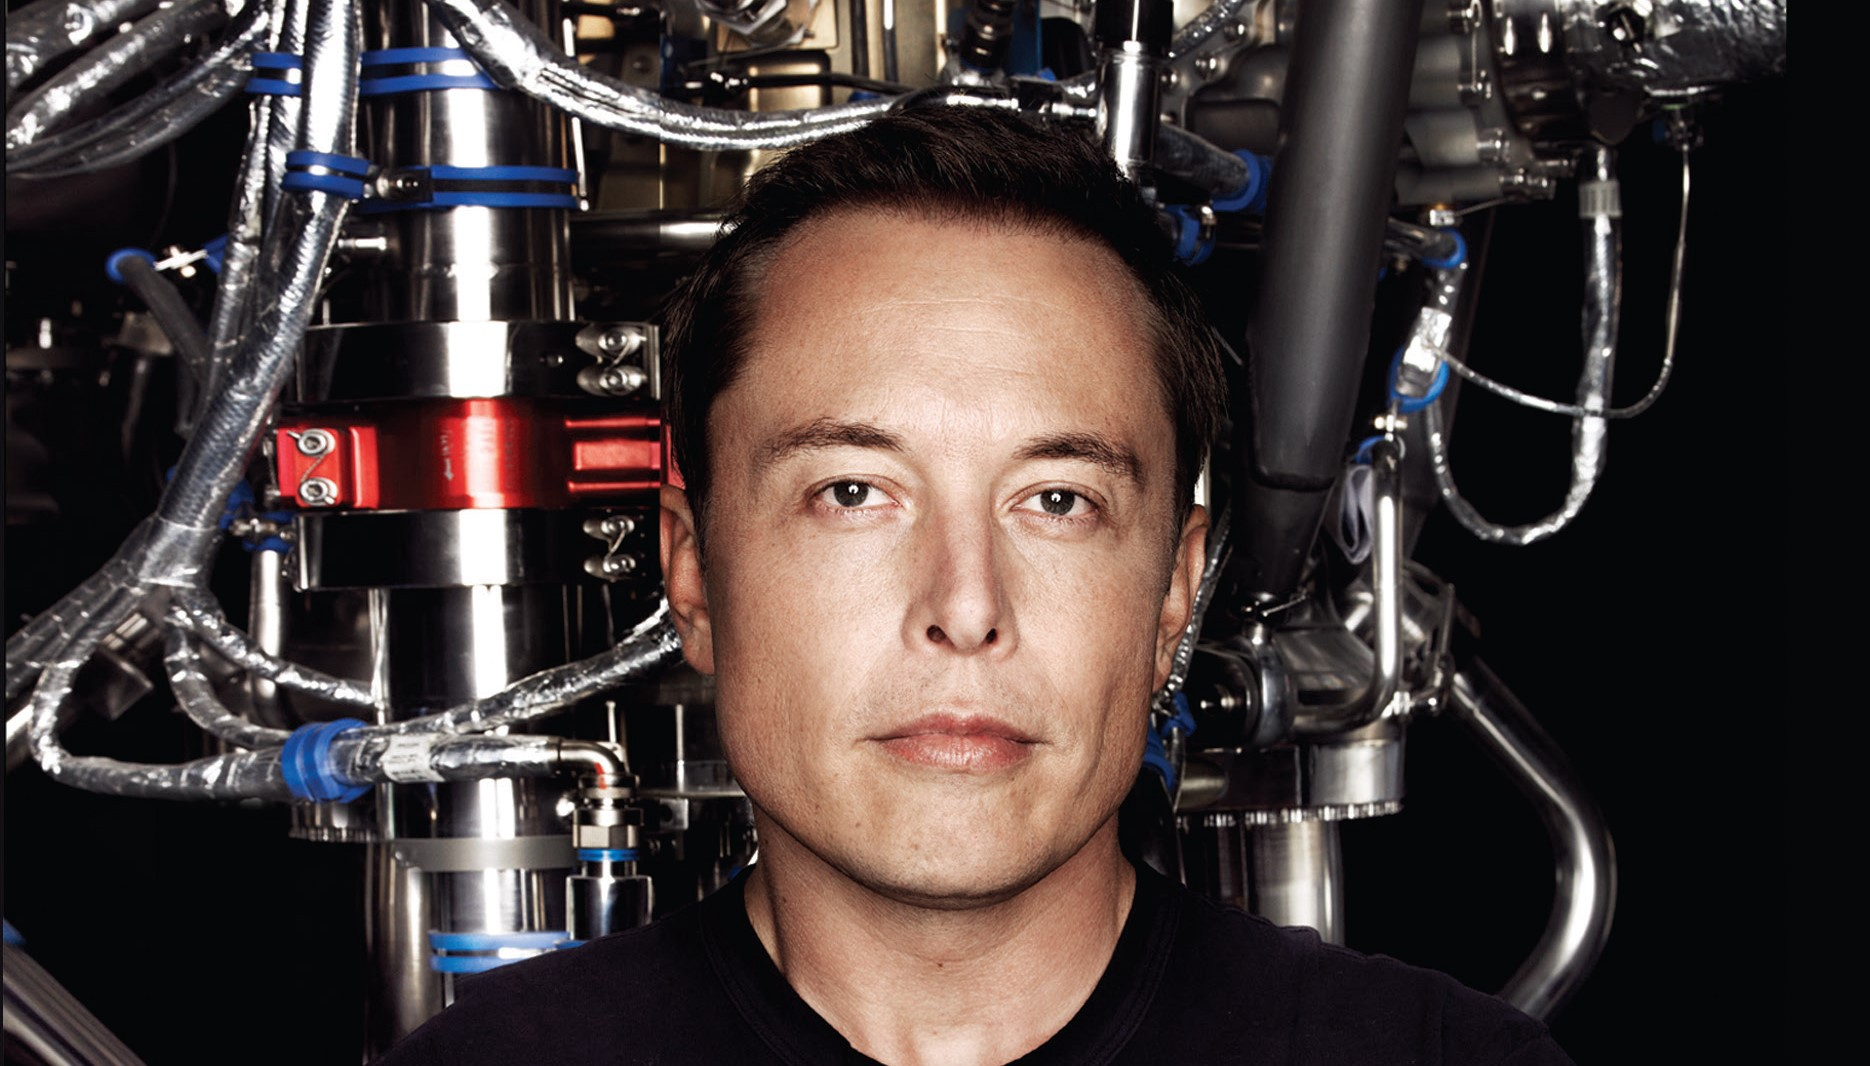 Elon Musk Tesla, SpaceX, and the Quest for a Fantastic Future - Biography about Elon Musk